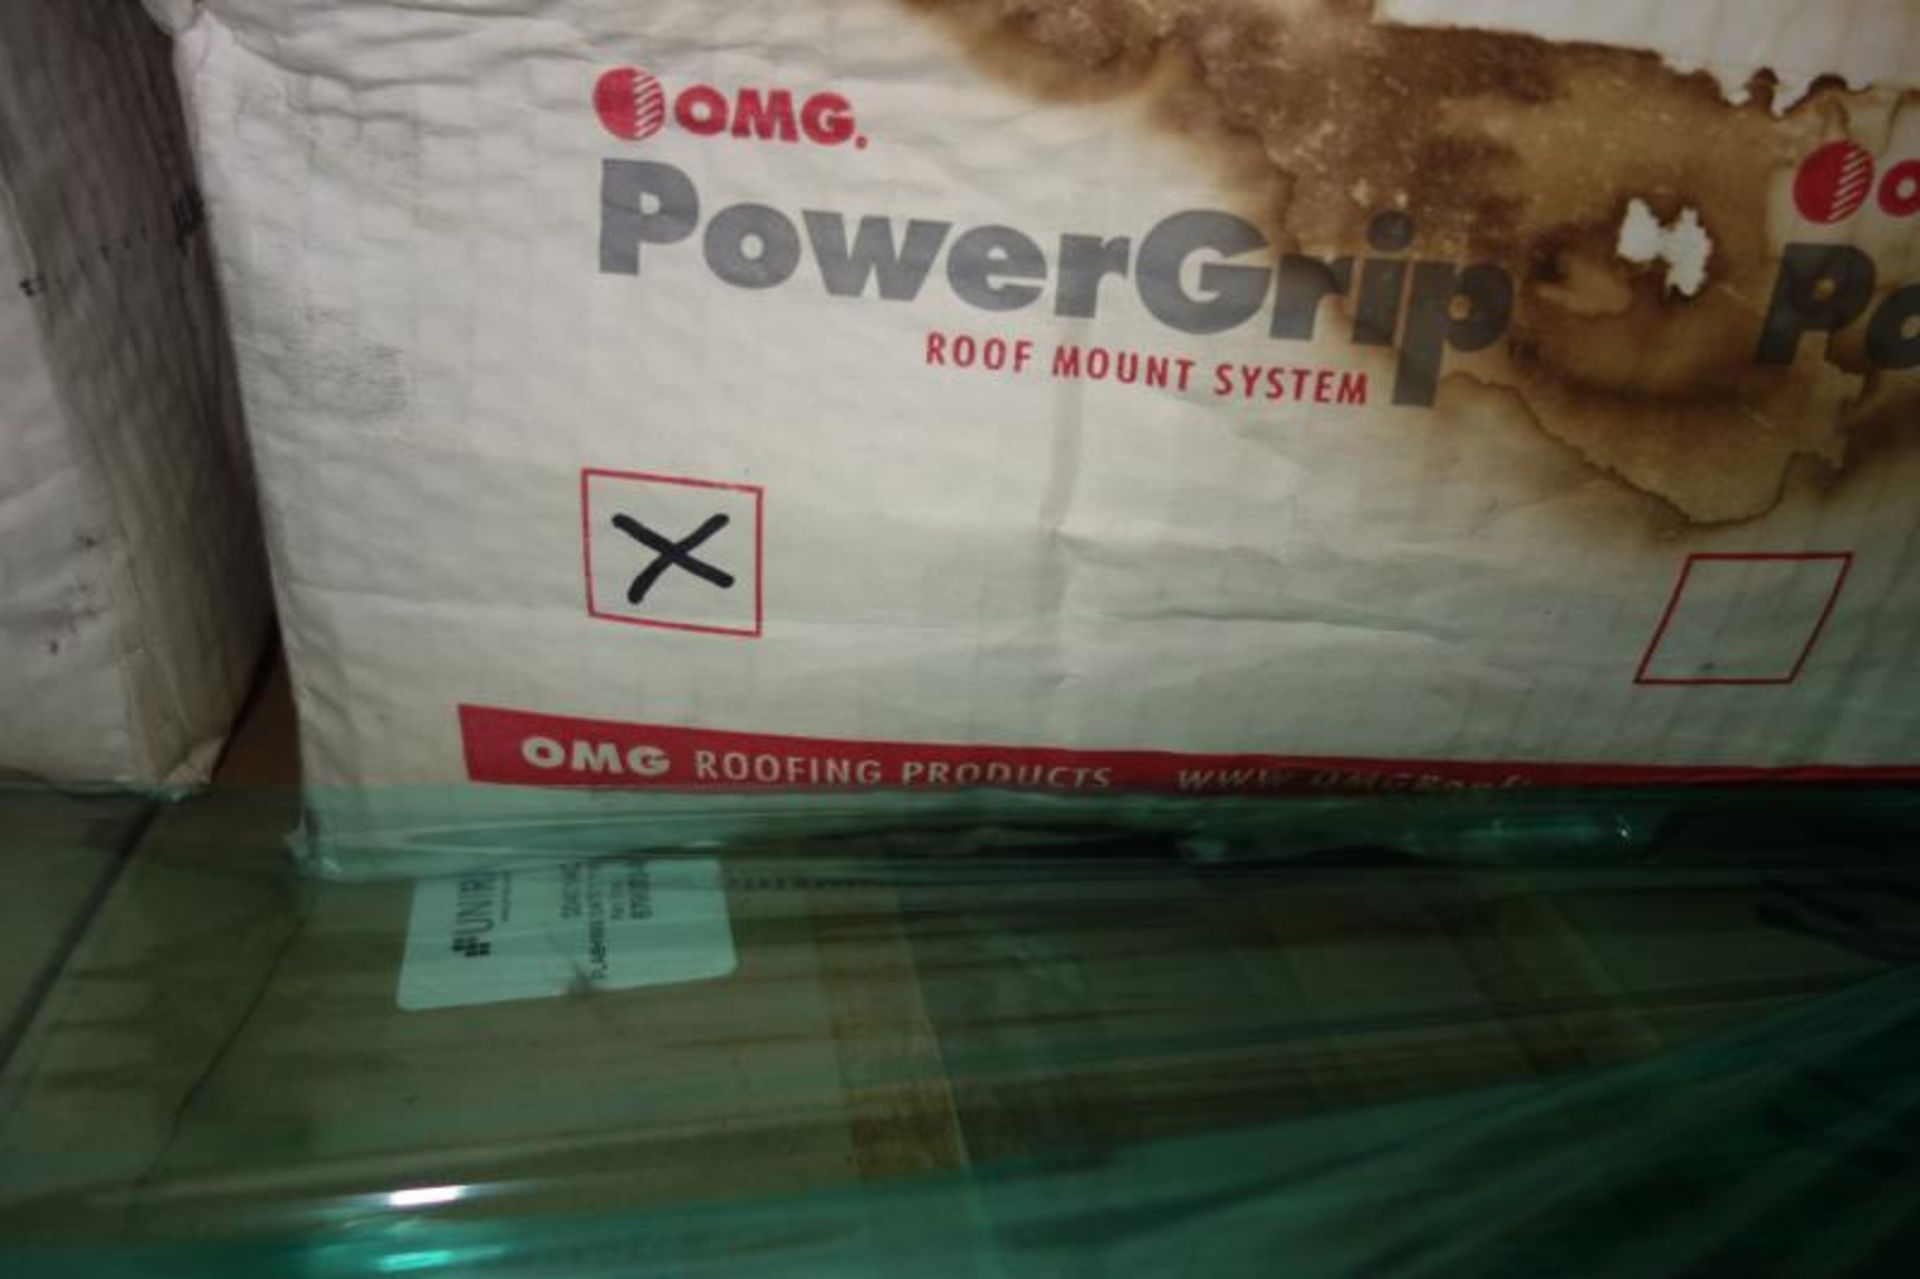 Lot 36 - Pallet of Oatley 12 No11840 NC-1 Roof Flashing, (3) Boxes Powergrip Roof Mount System